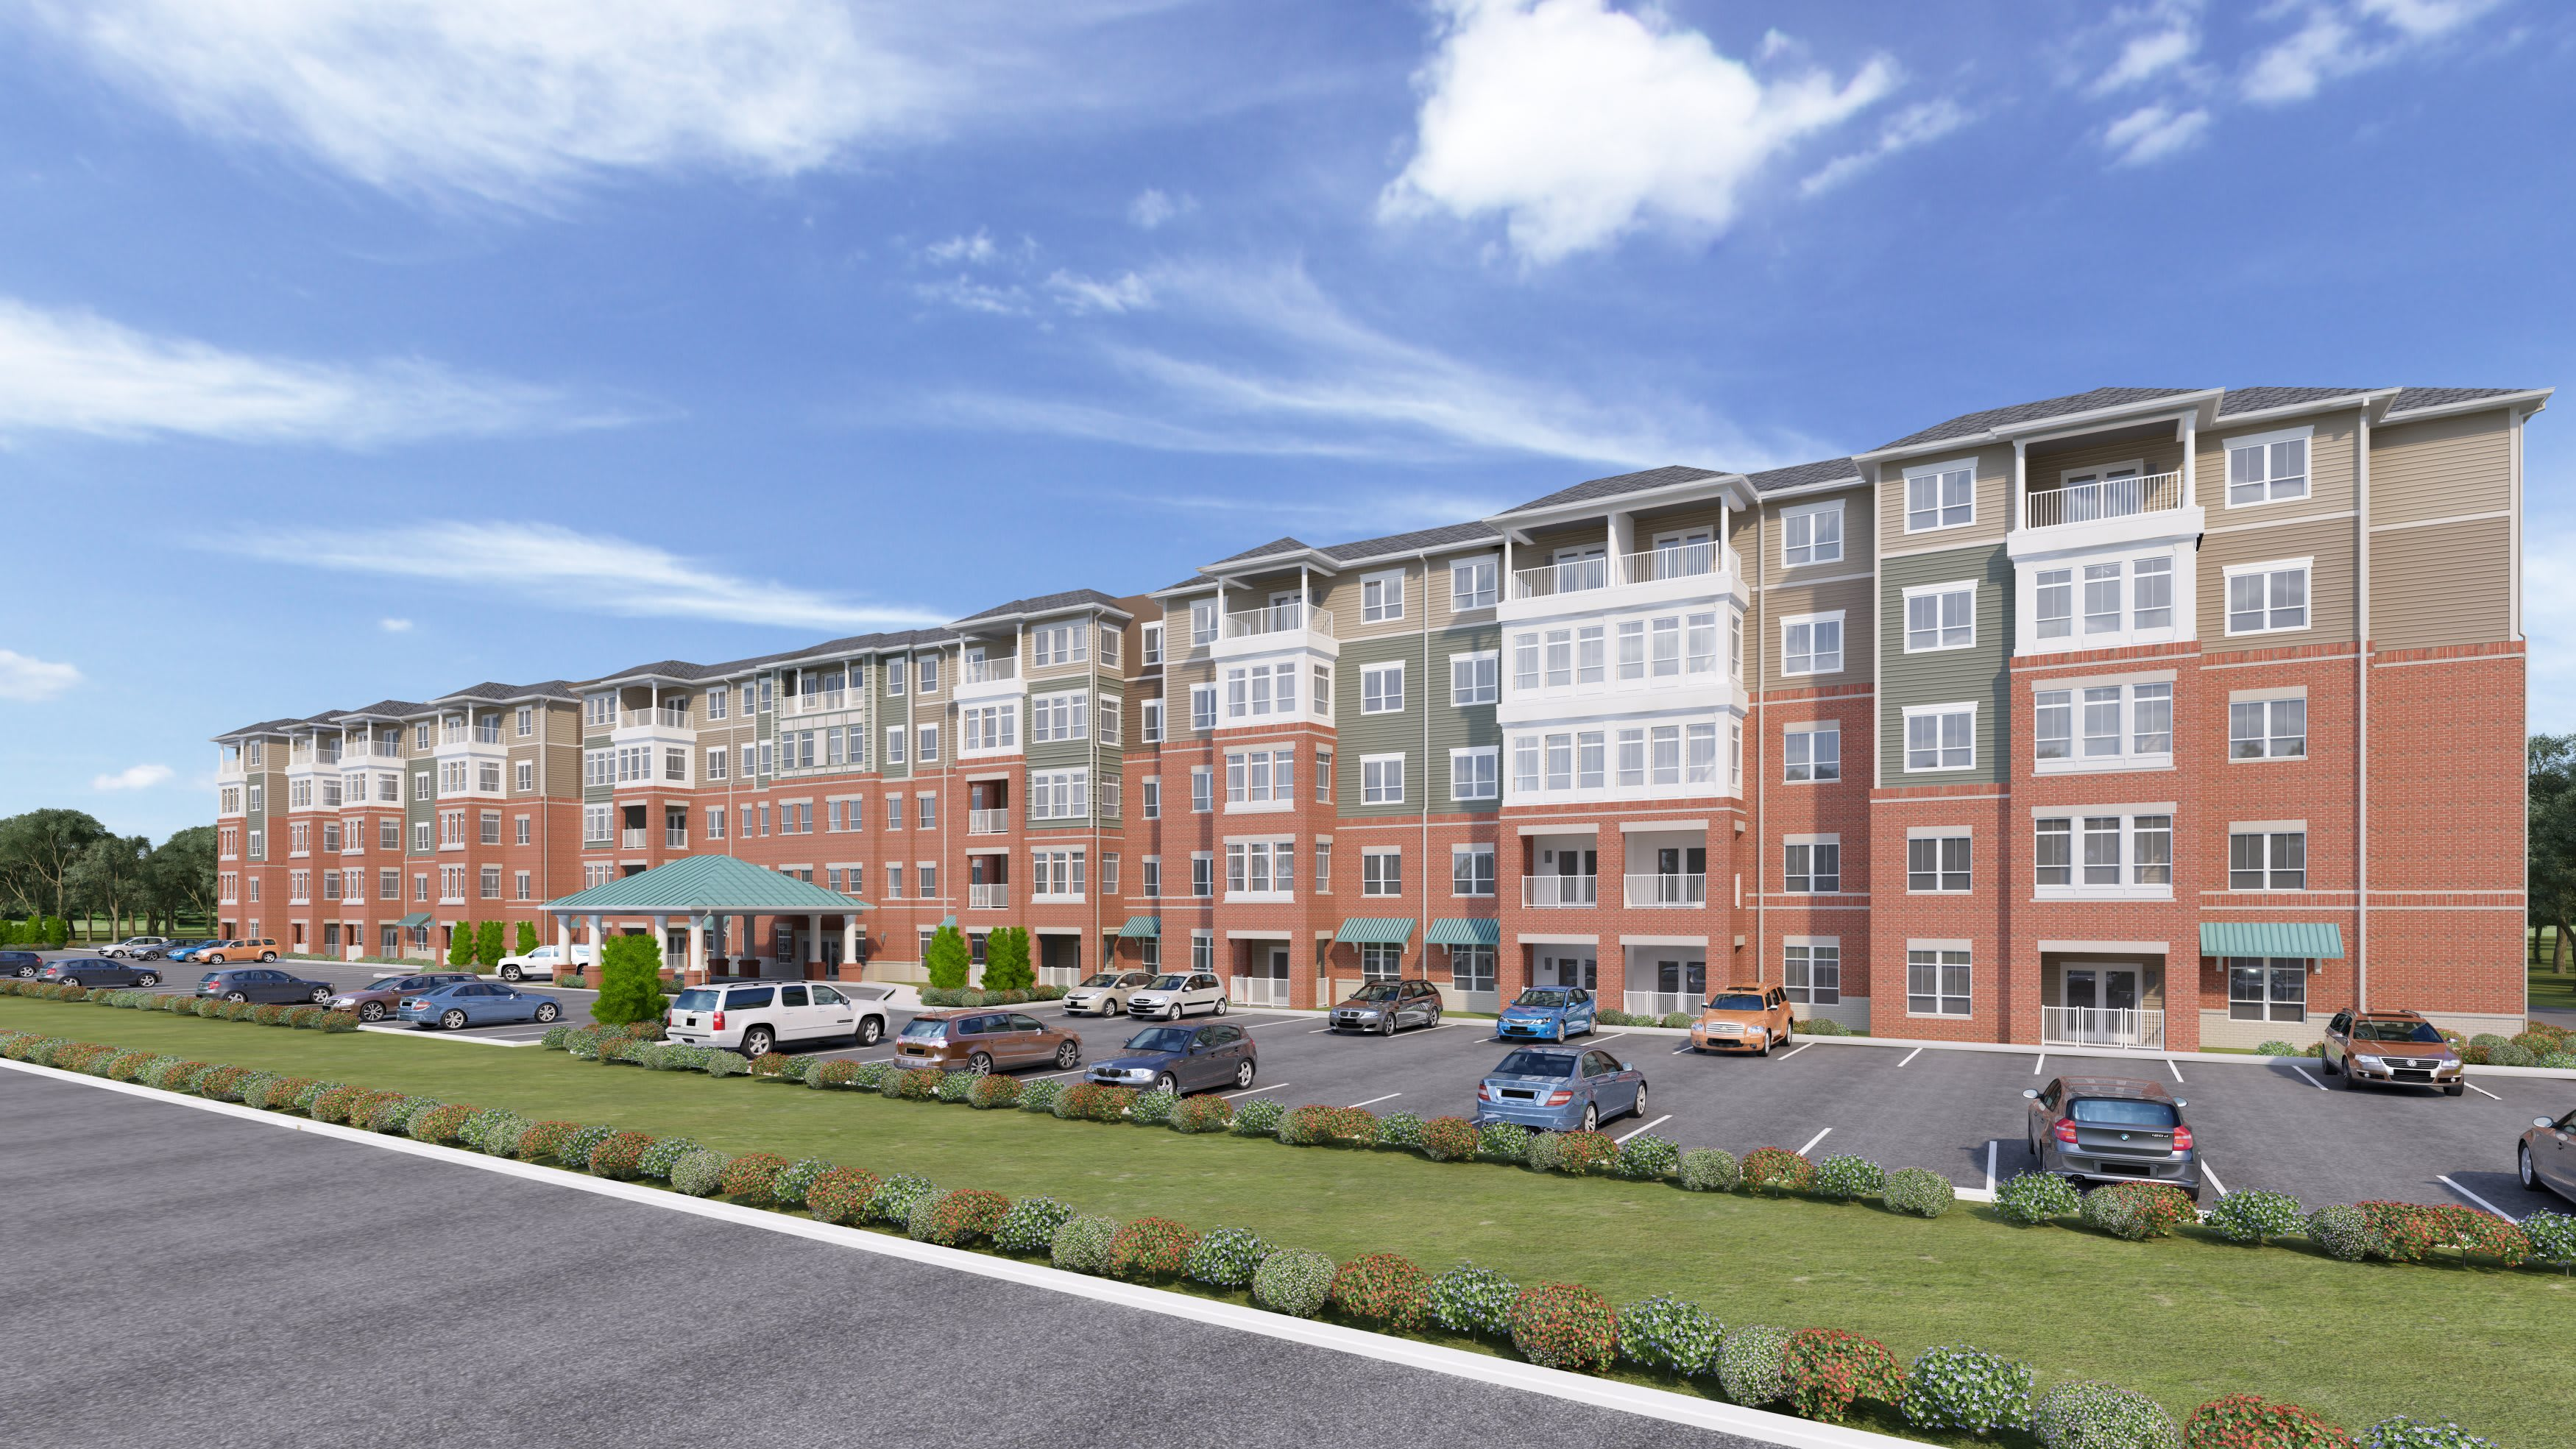 Photo 1 of The Harmony Collection at Hanover Independent and Assisted Living (Assisted Living Opening Early 2021)